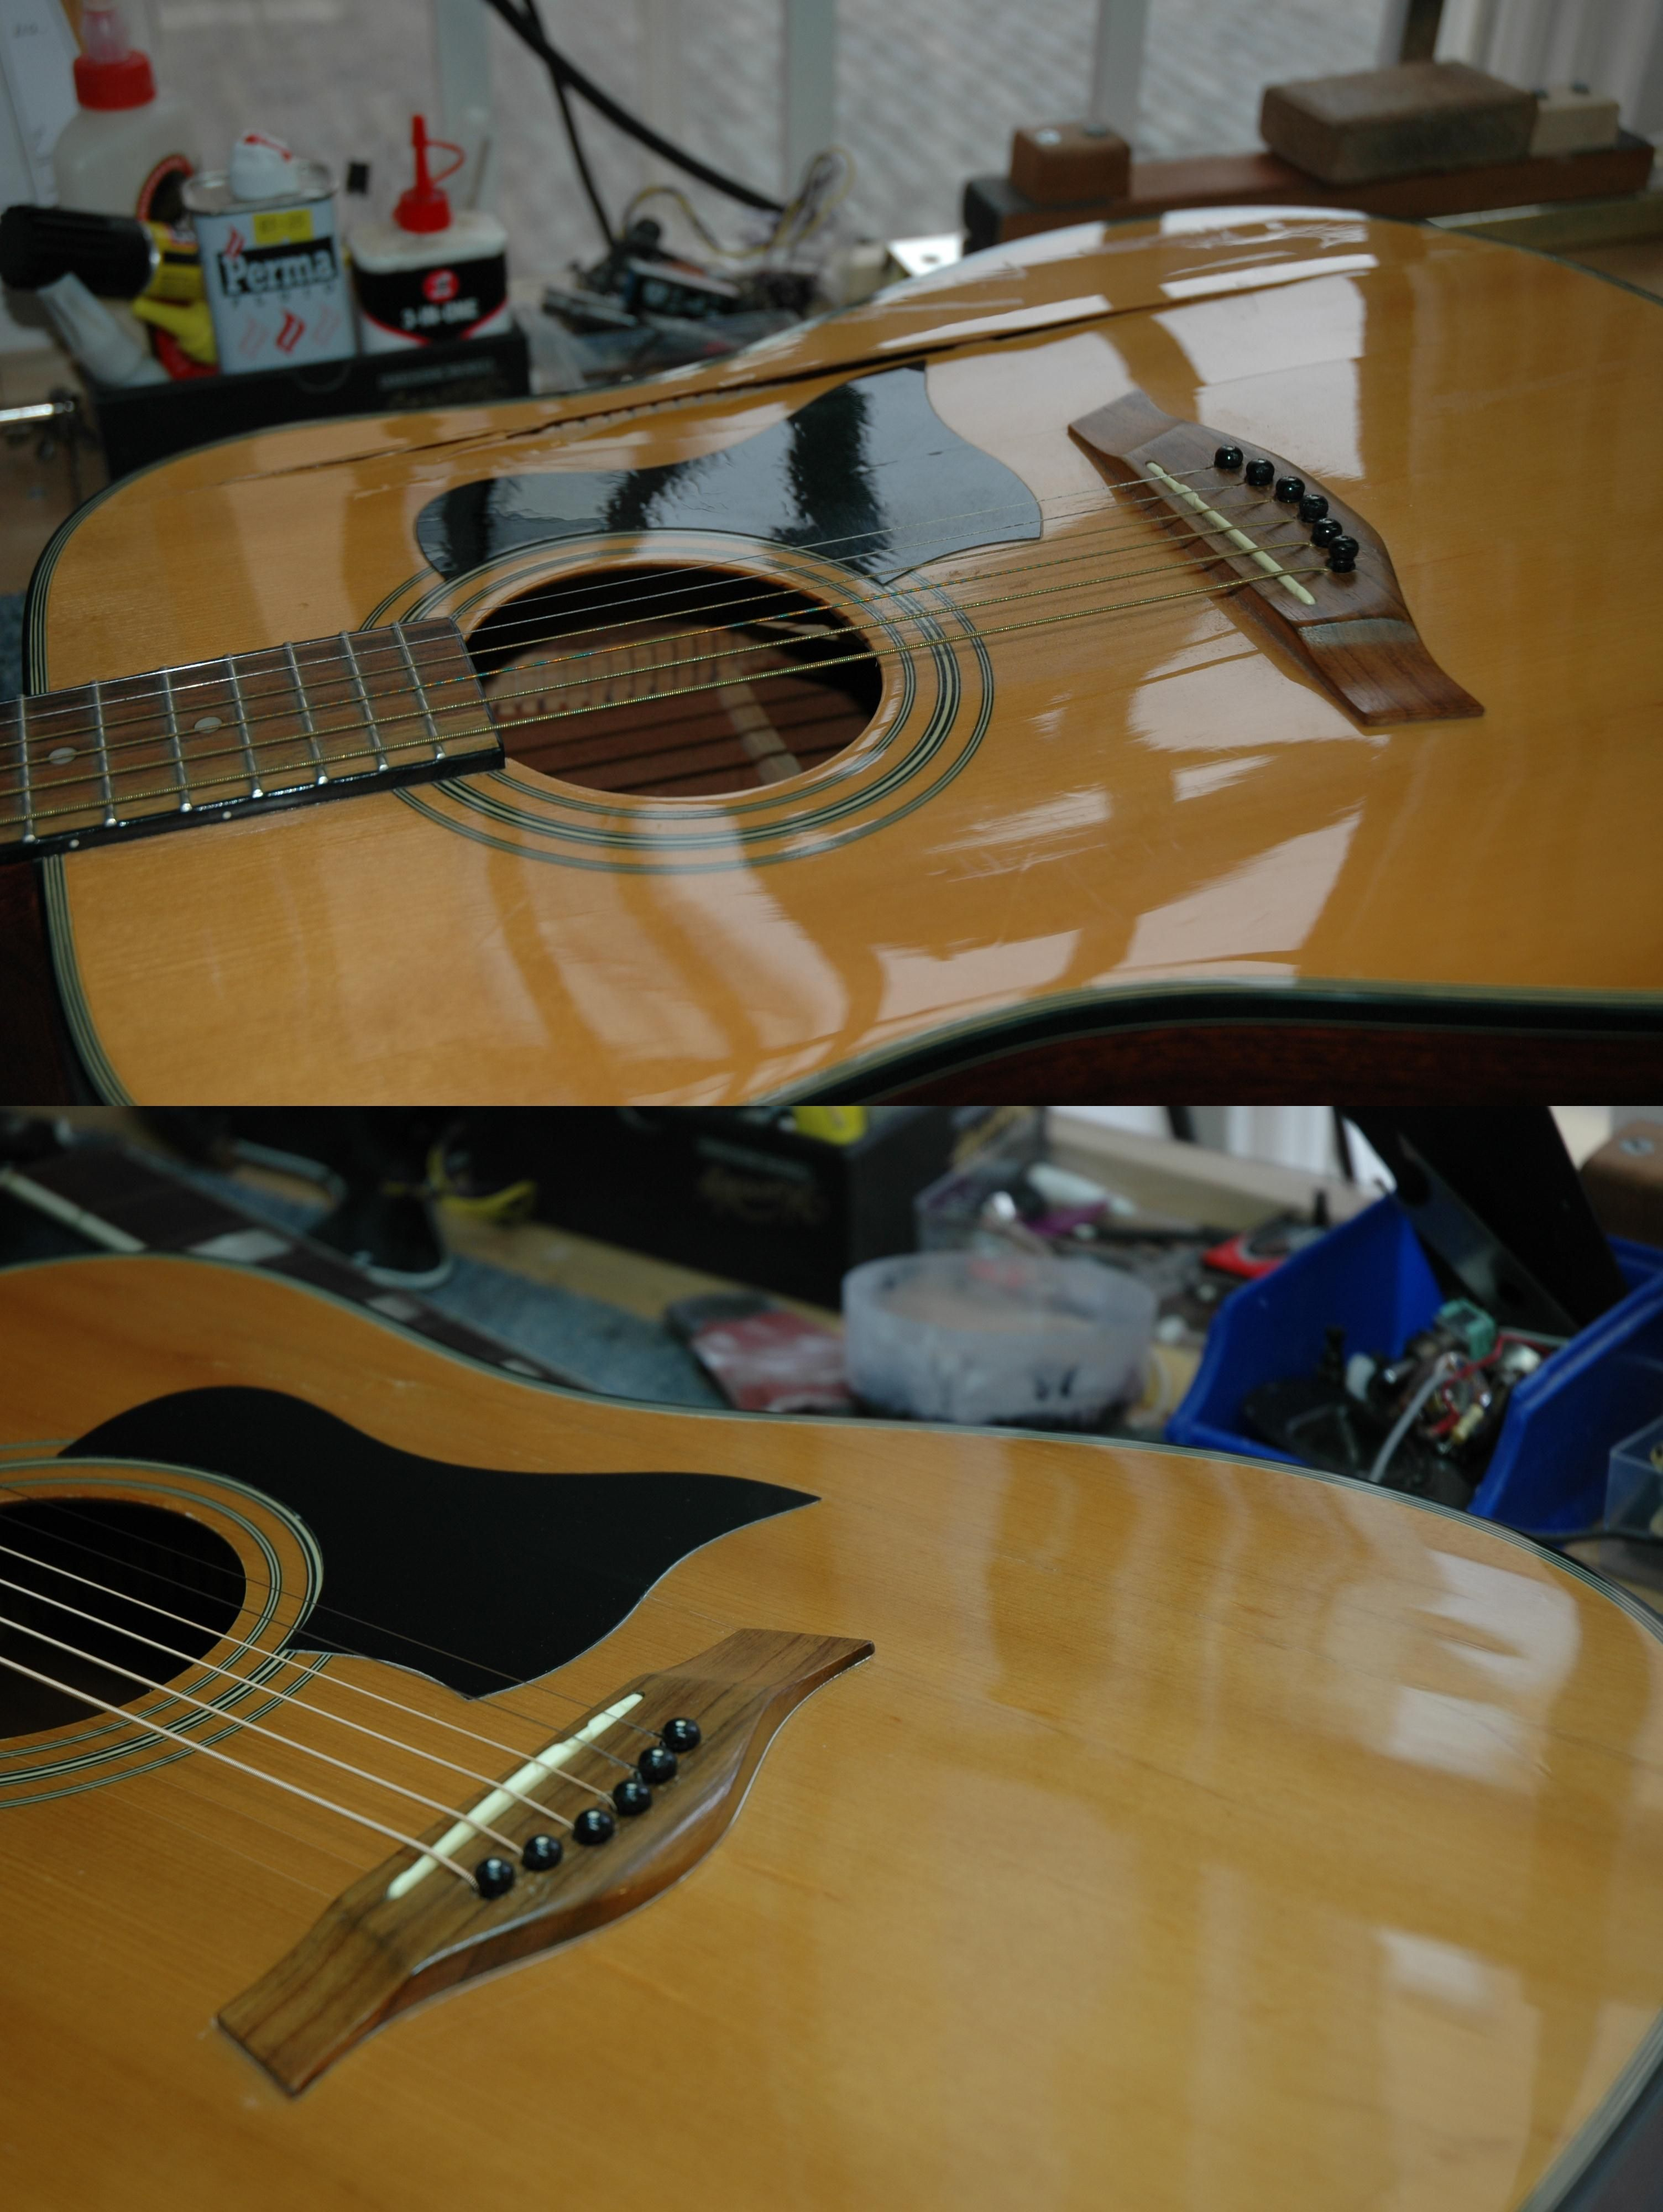 Guitar Repair Tanglewood Acoustic Before And After Repair To Top And Finish Touchup Search Dave Rowlinson Guitar Repair On Faceboo Guitar Repair Acoustic